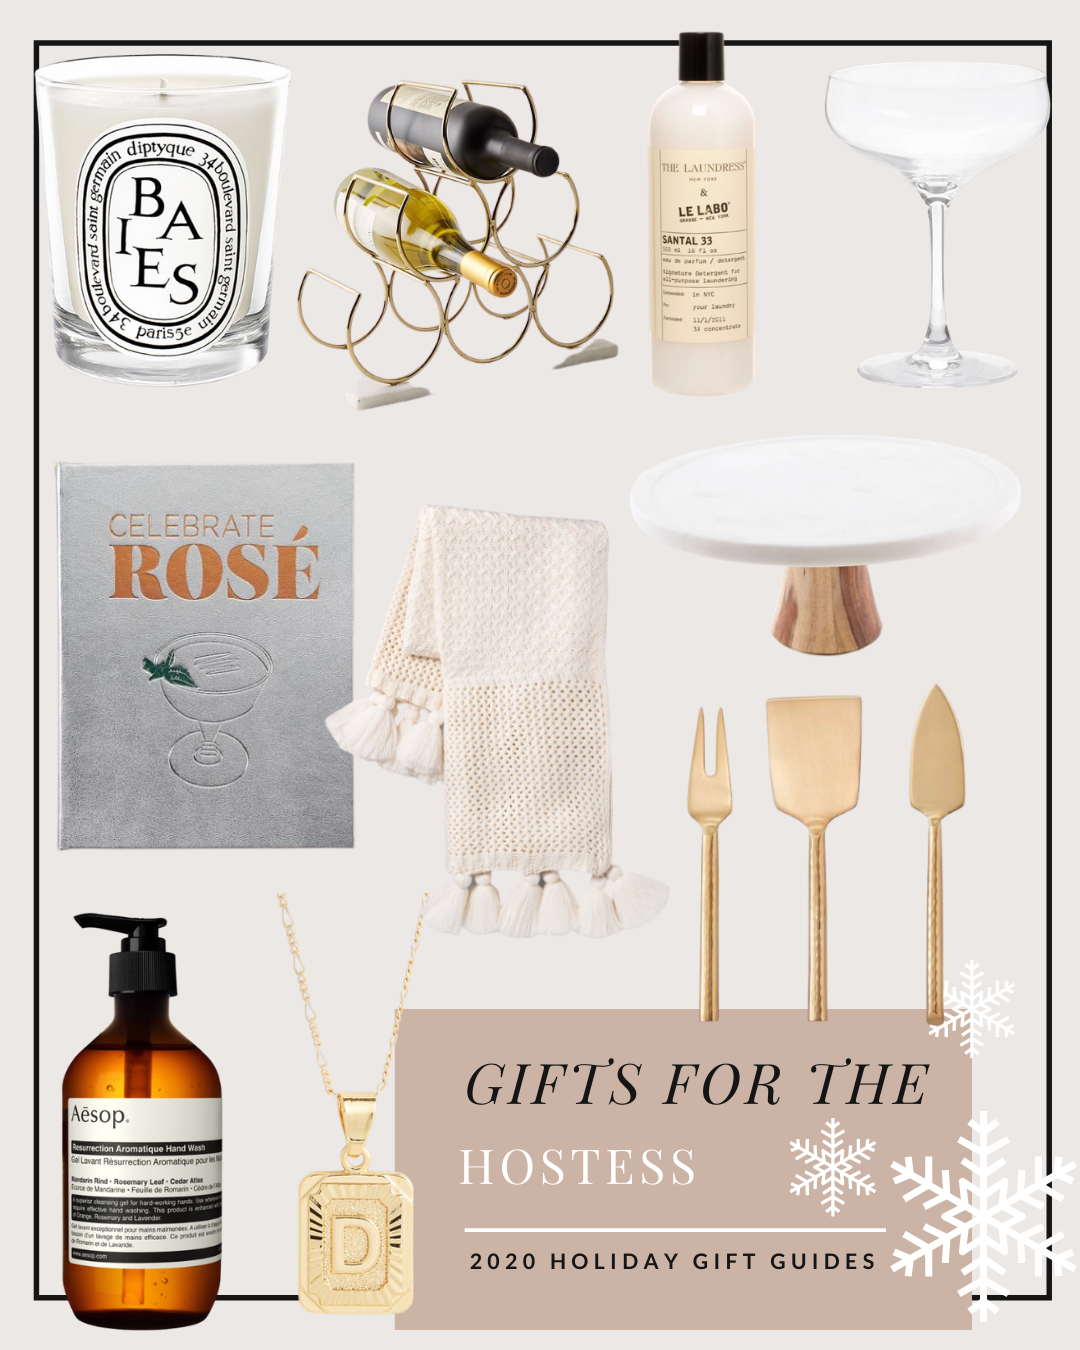 gift ideas for the hostess 2020